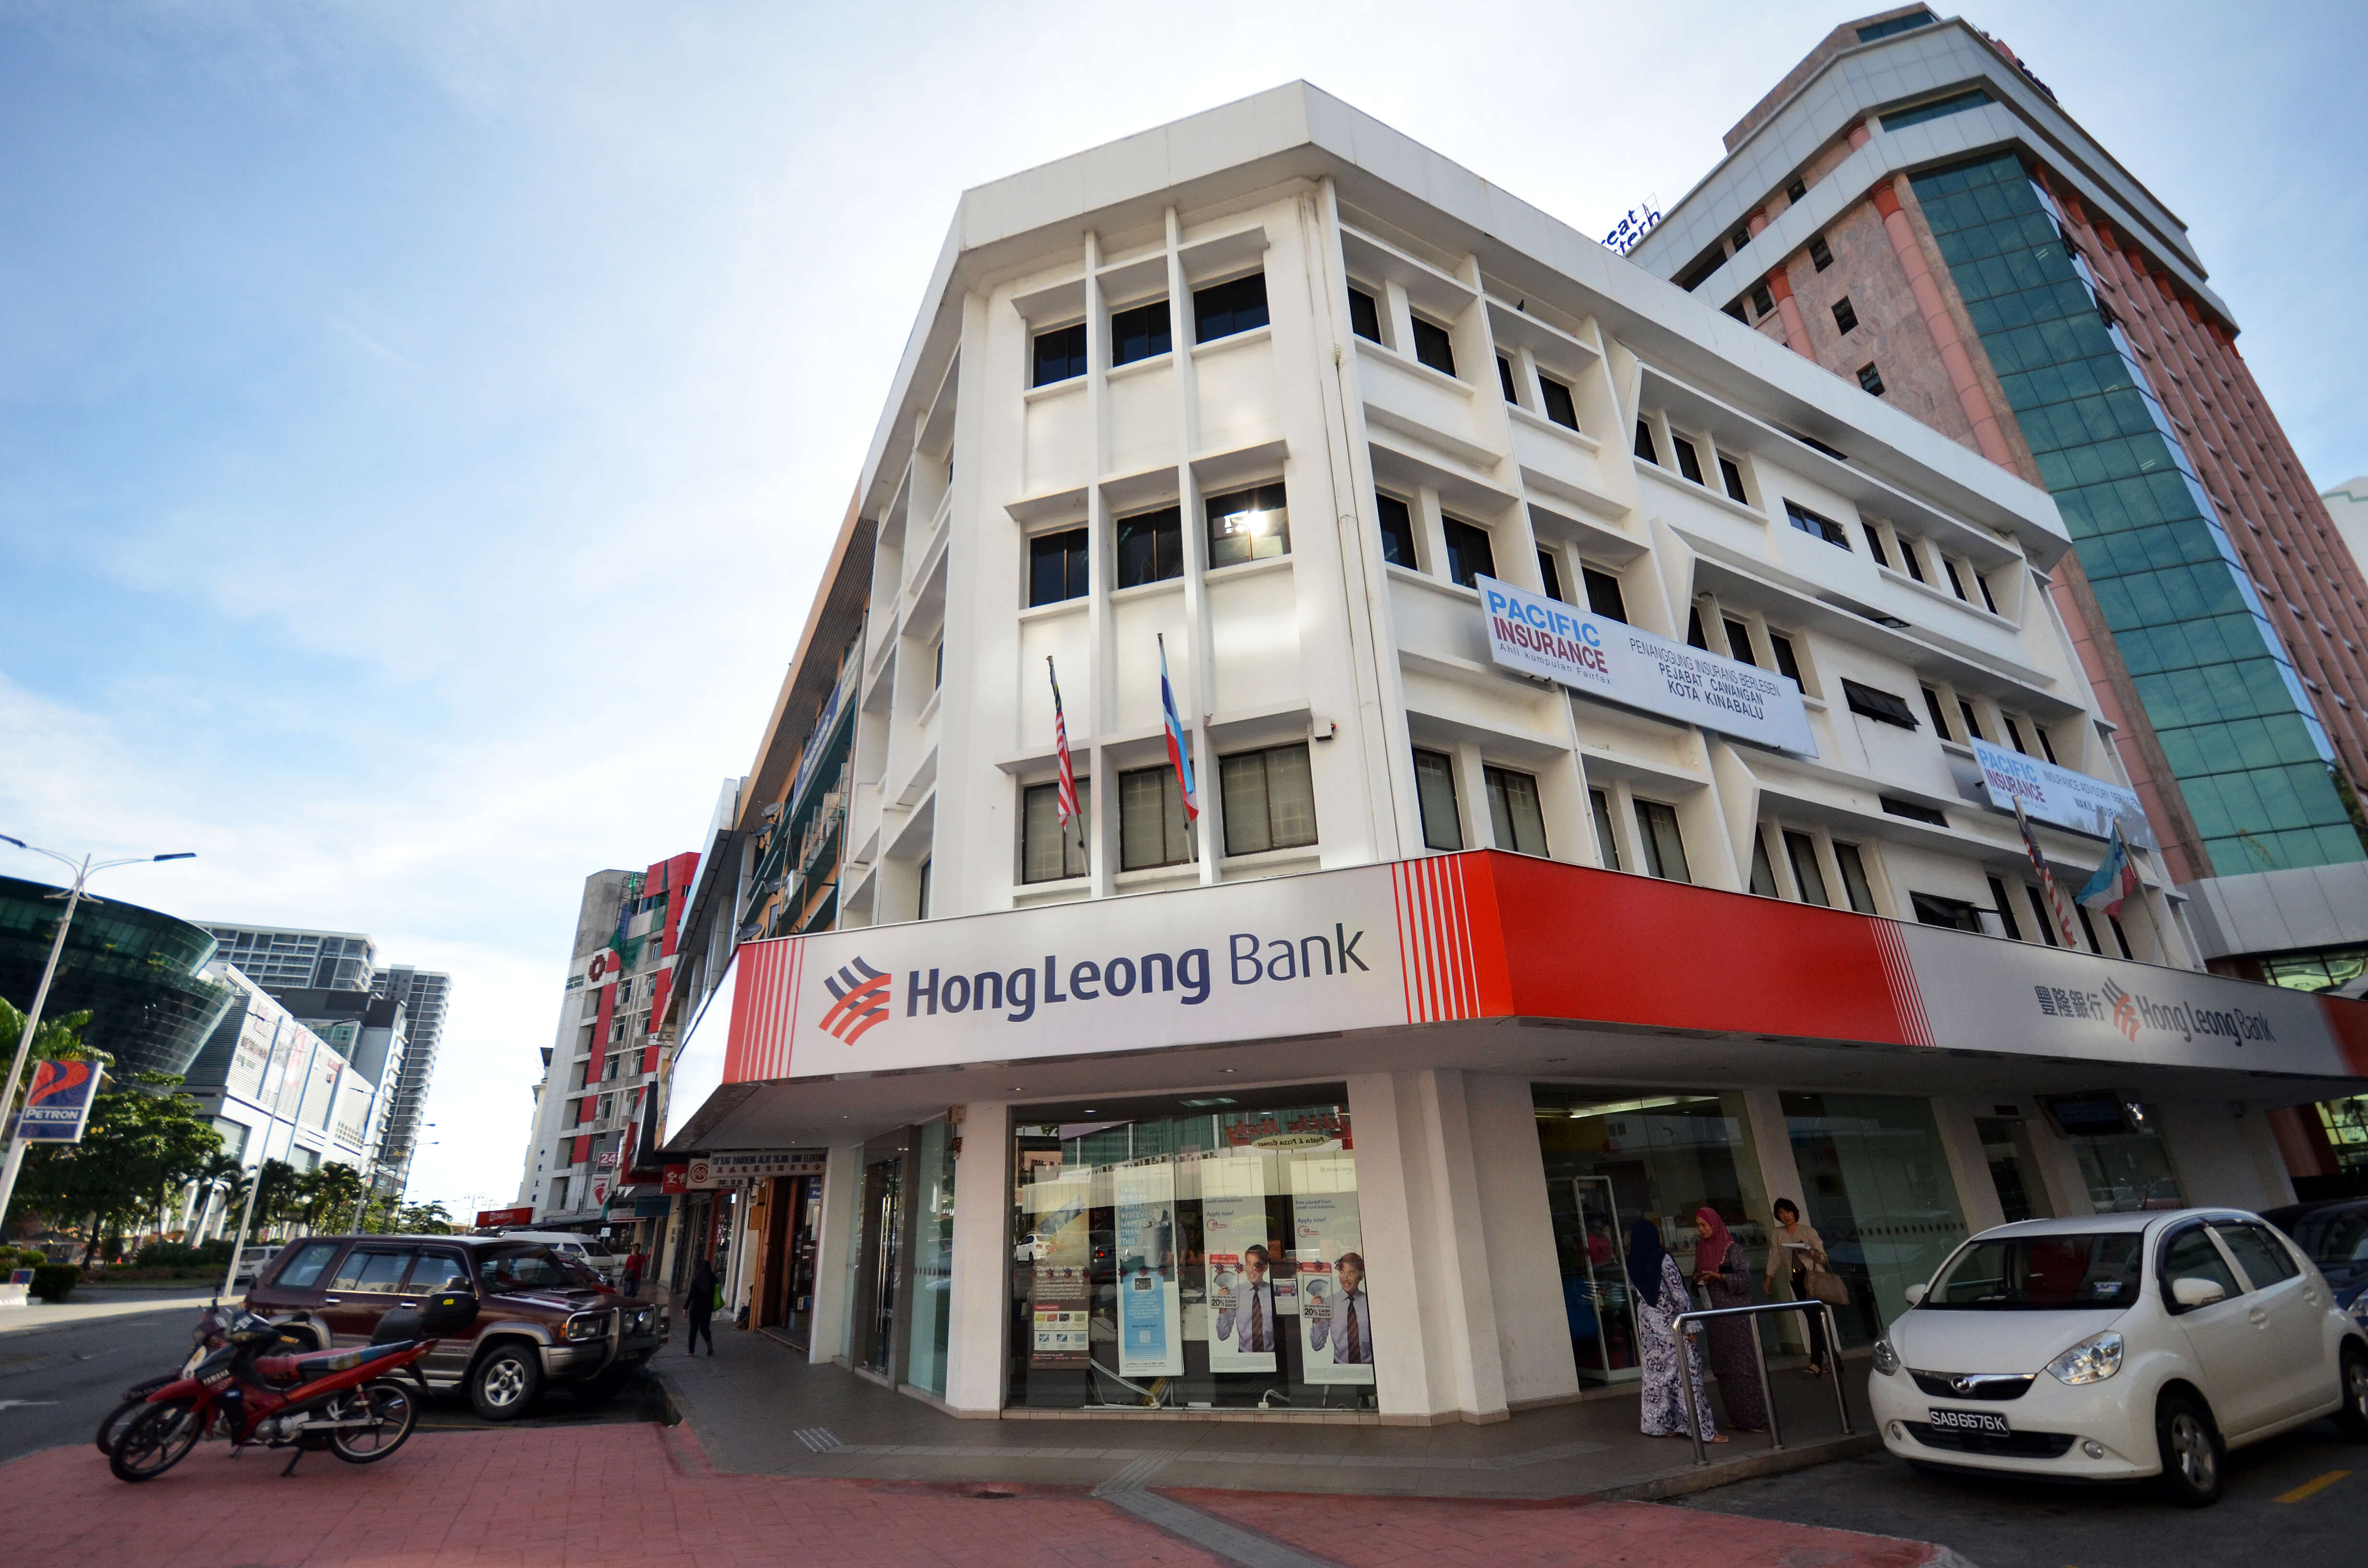 Hong Leong Bank adopted Industry 4.0 technologies to improve its customer service experience. Source: Shutterstock